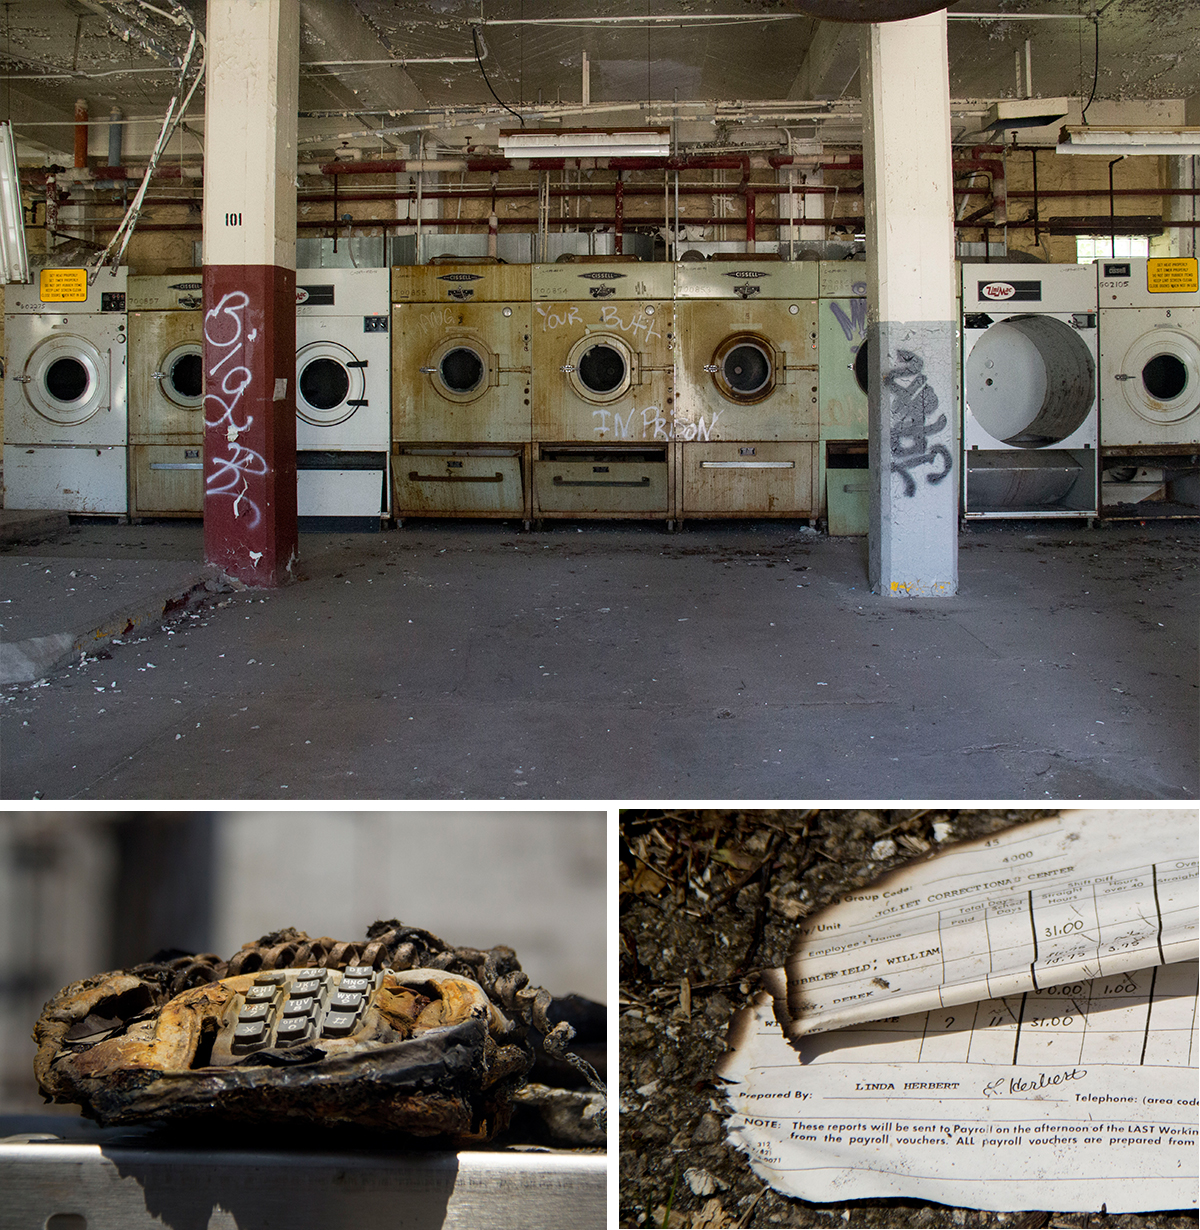 The facility is now filled with graffiti, including the room that once held washers. (Top) Other parts of the prison that were burned by arsonists are littered with things like charred phones (bottom left) and documents (bottom right). (Paula Friedrich/WBEZ)